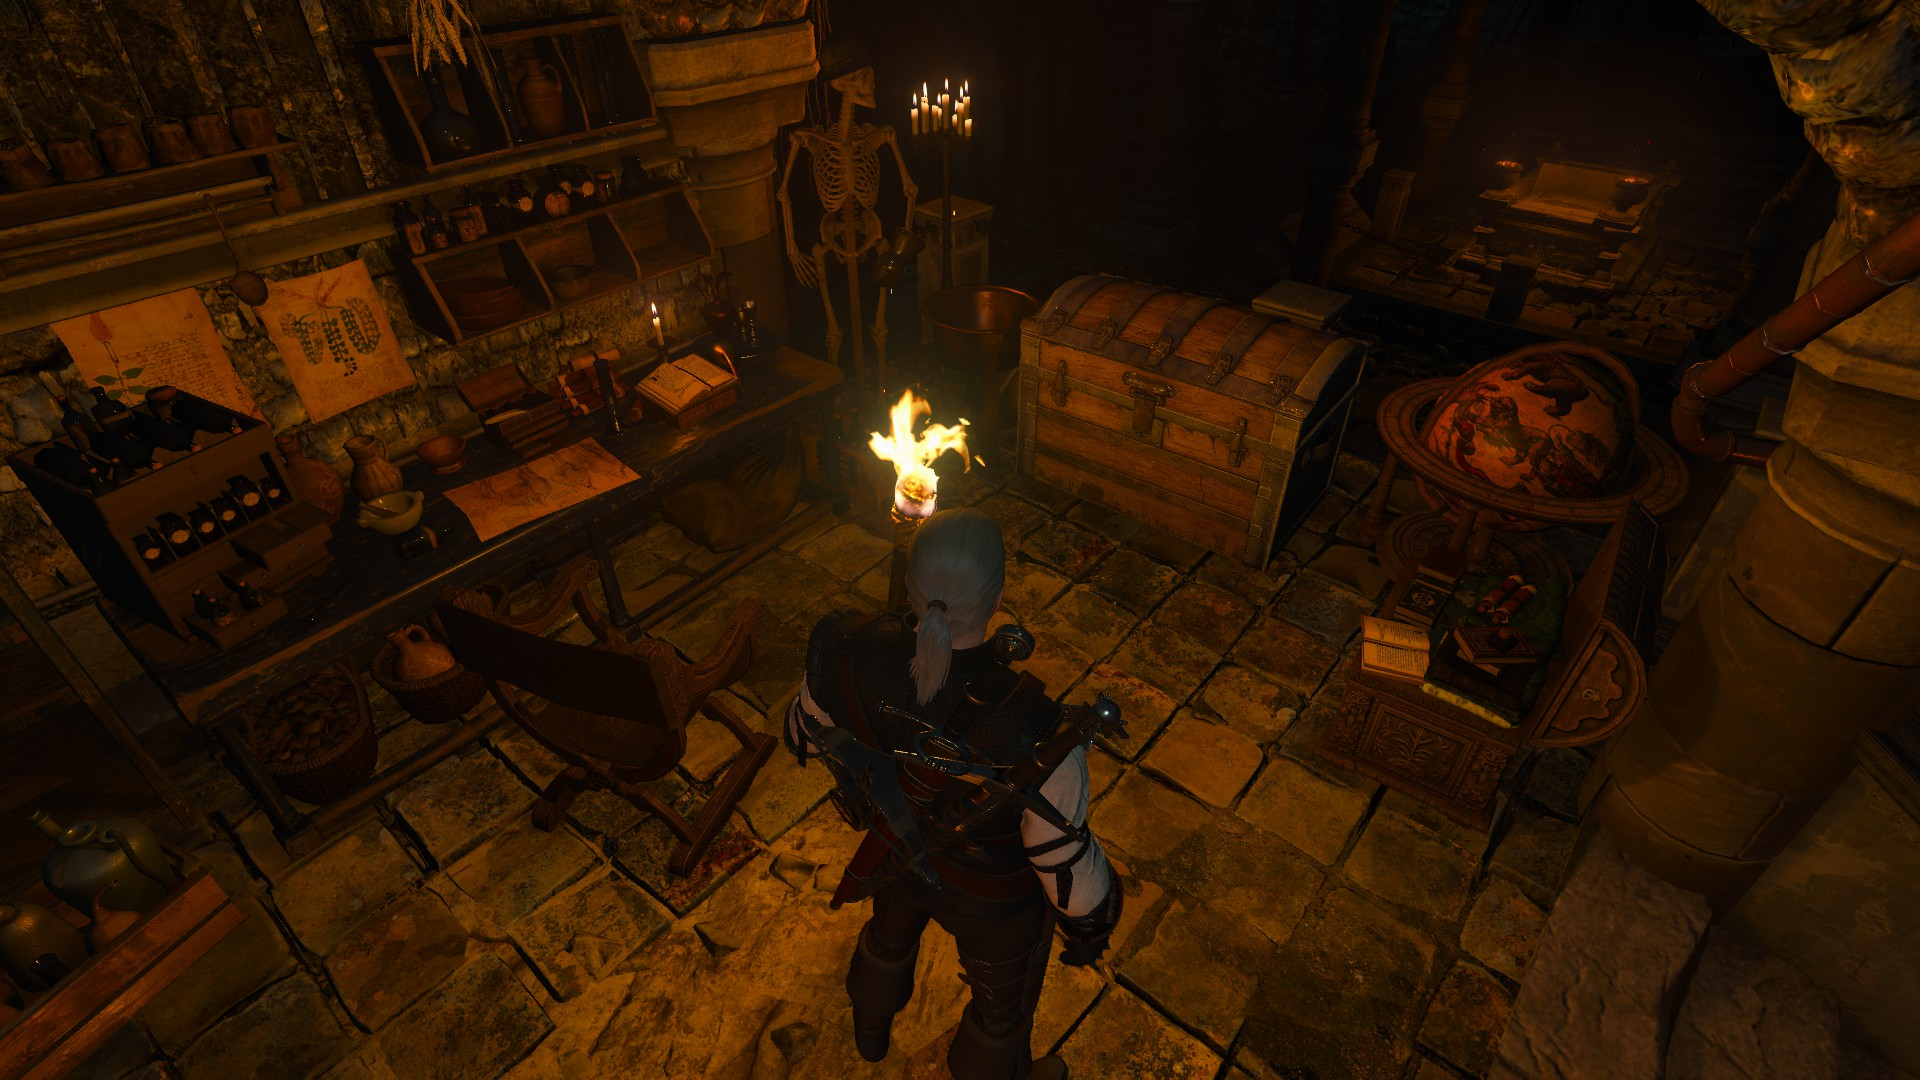 Best Witcher 3 Mods - Additional Stash Locations